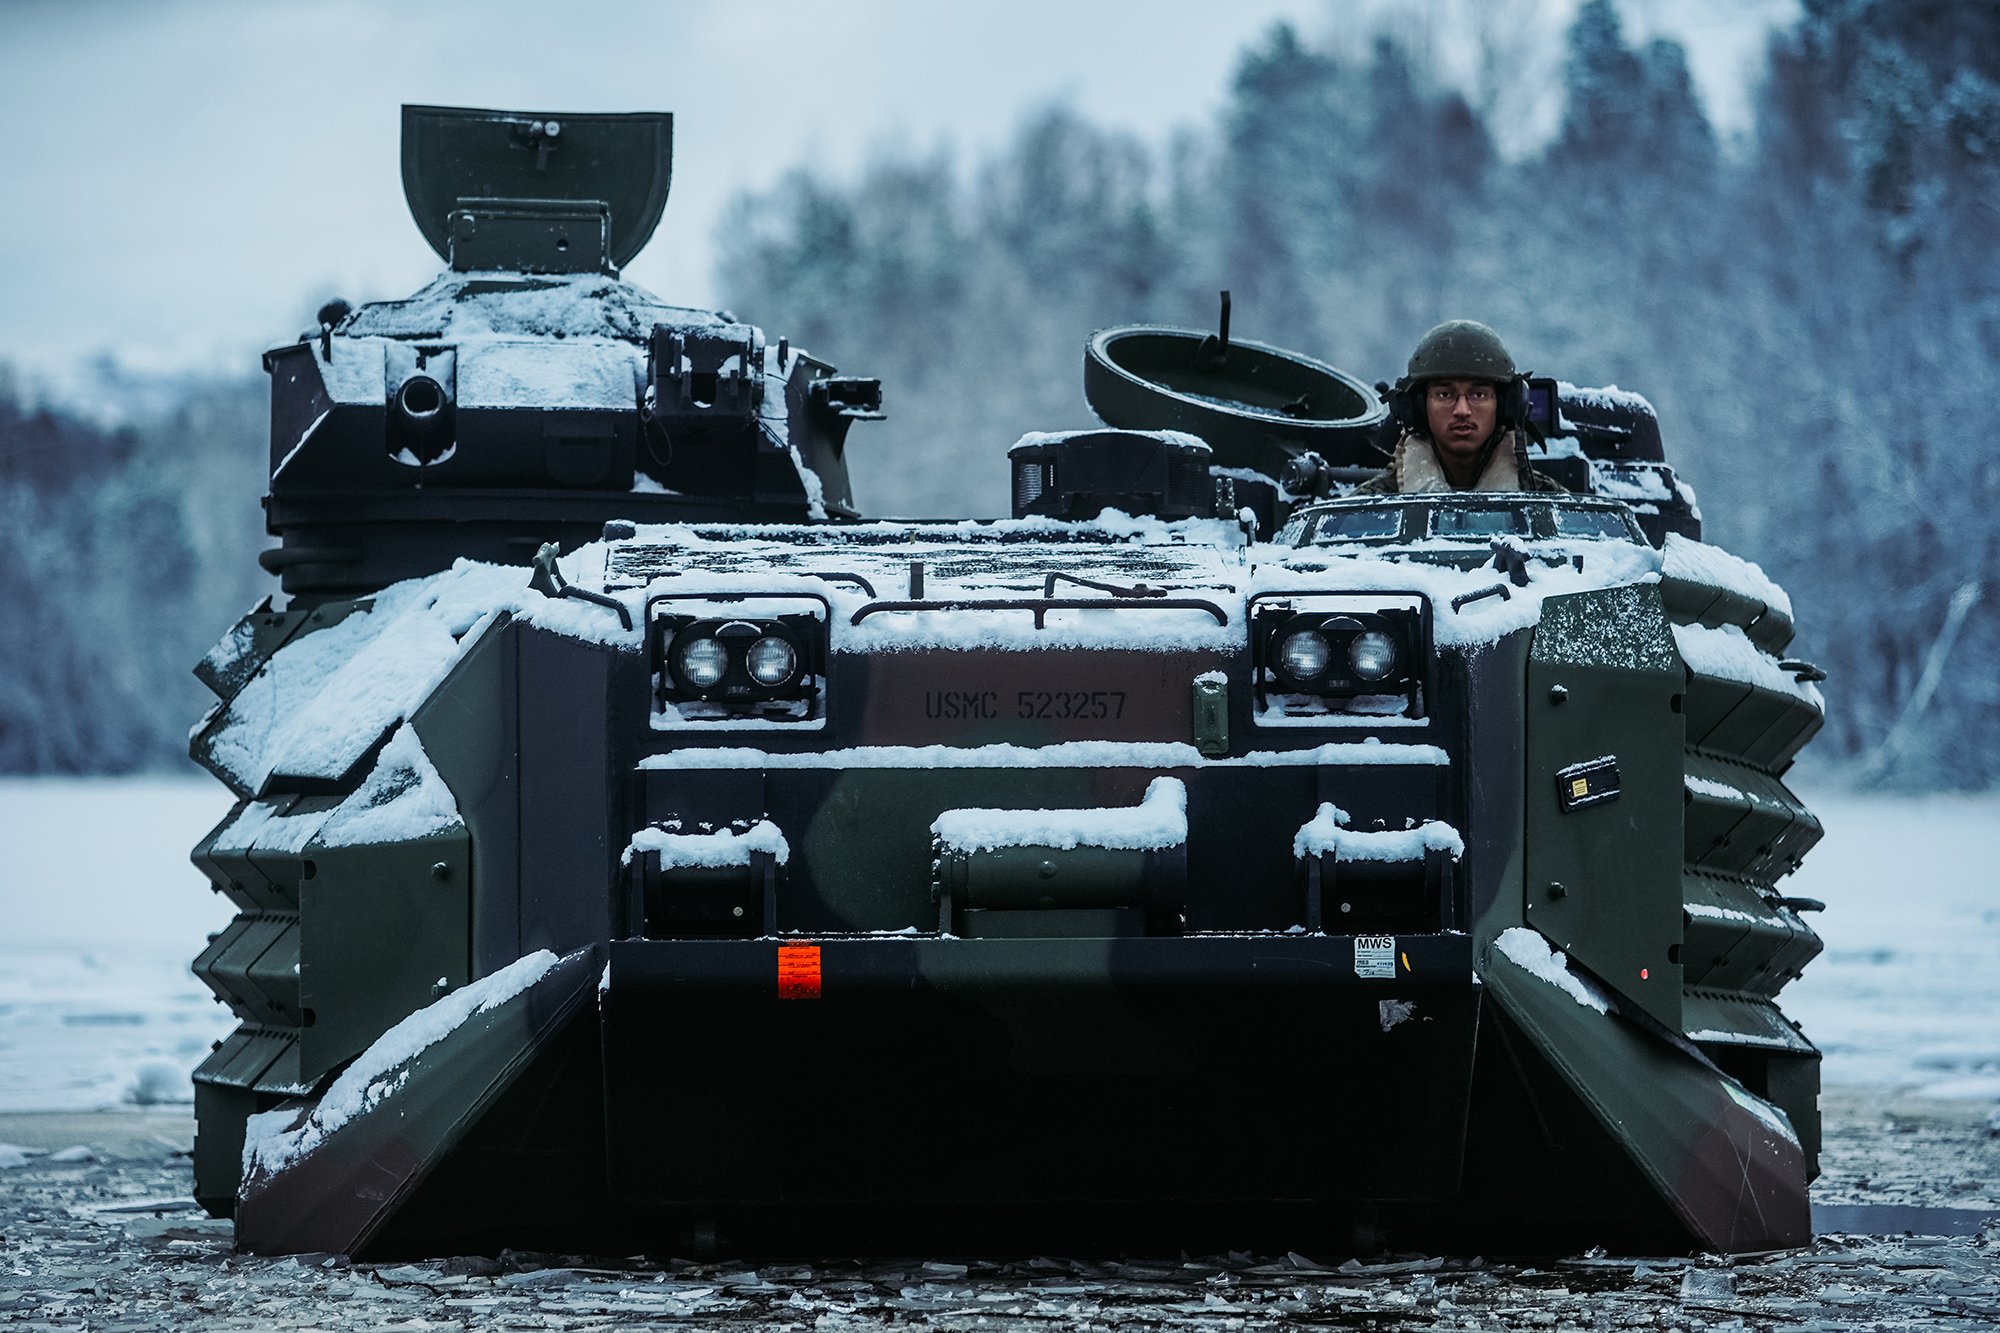 U.S. Marines conduct a safety of use memorandum on an assault amphibious vehicle in preparation for Exercise Reindeer II, Reindeer I, and Joint Viking in Setermoen, Norway, Nov. 19, 2020. (Cpl. William Chockey/Marine Corps)